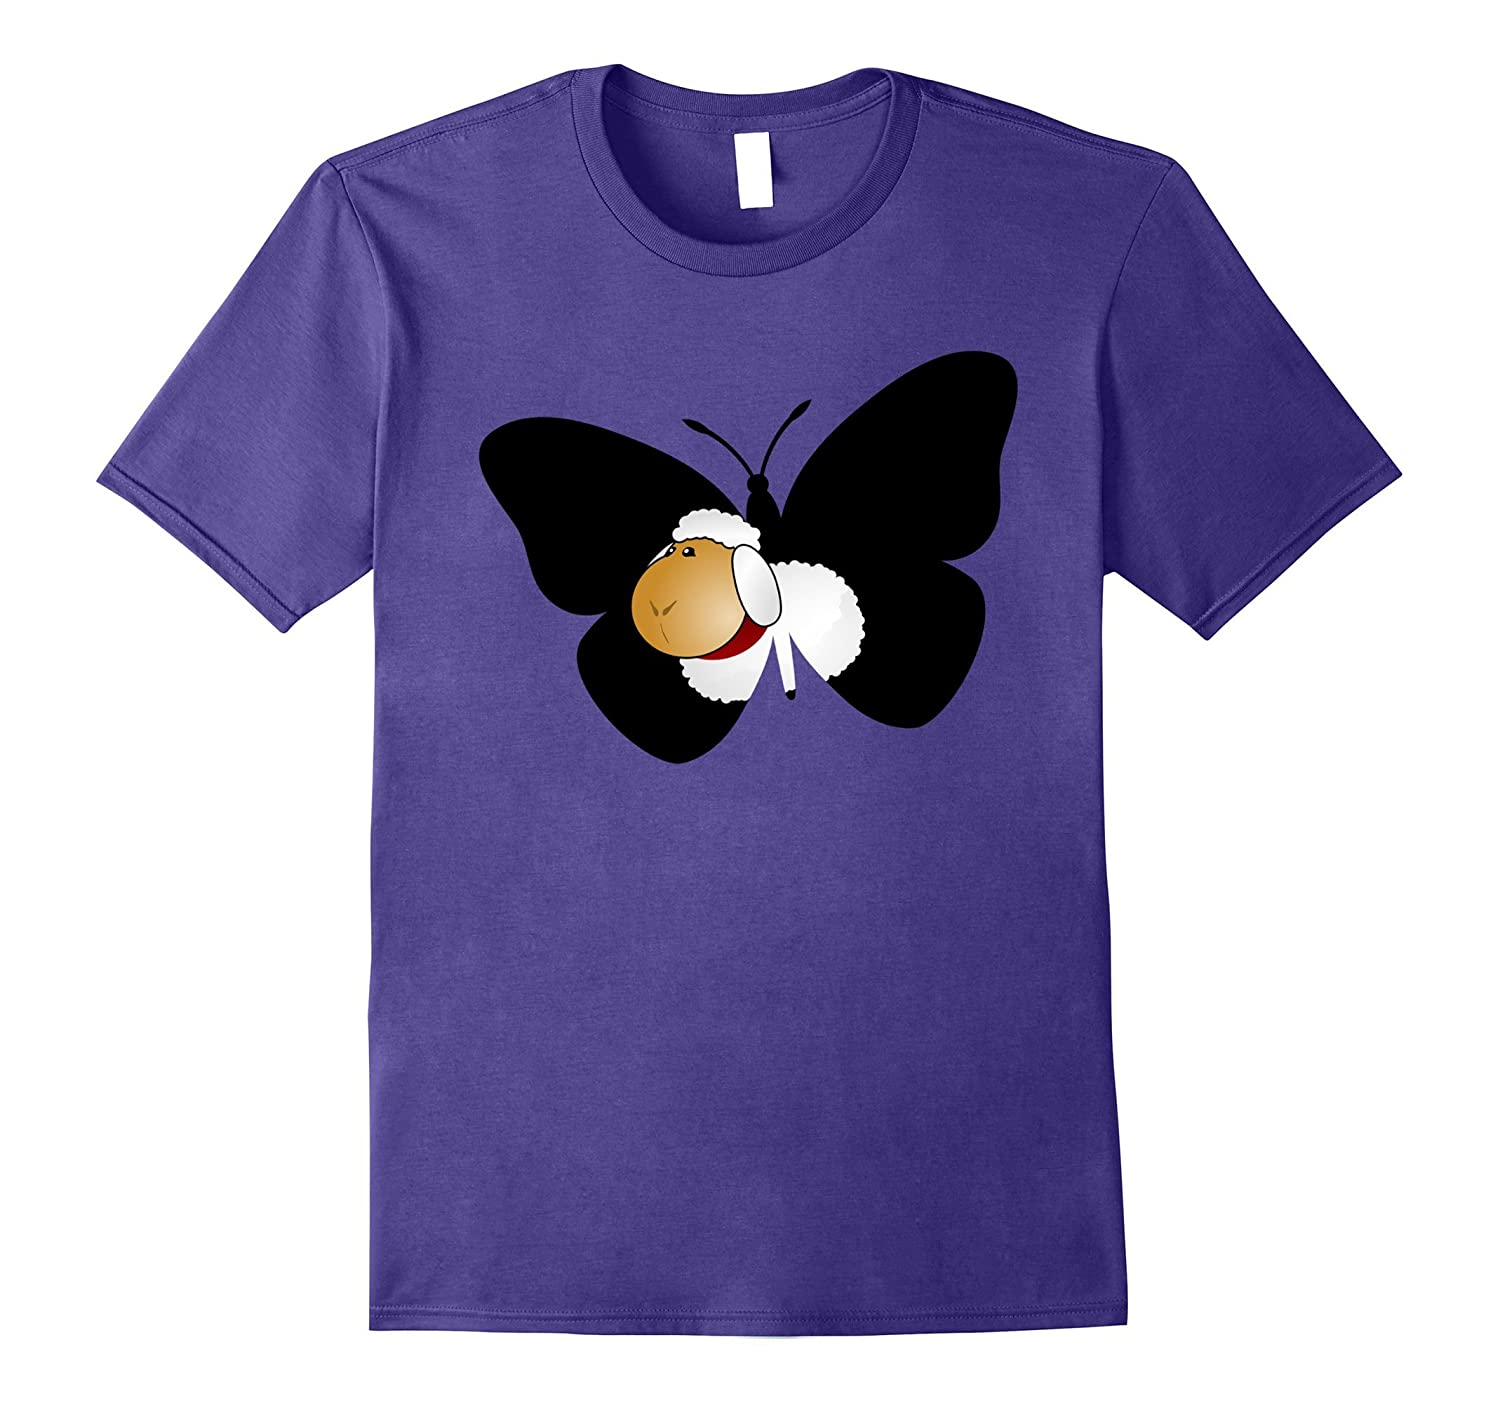 Butterfly sheep gift t shirt, Butter fly birthday uncle tees-FL